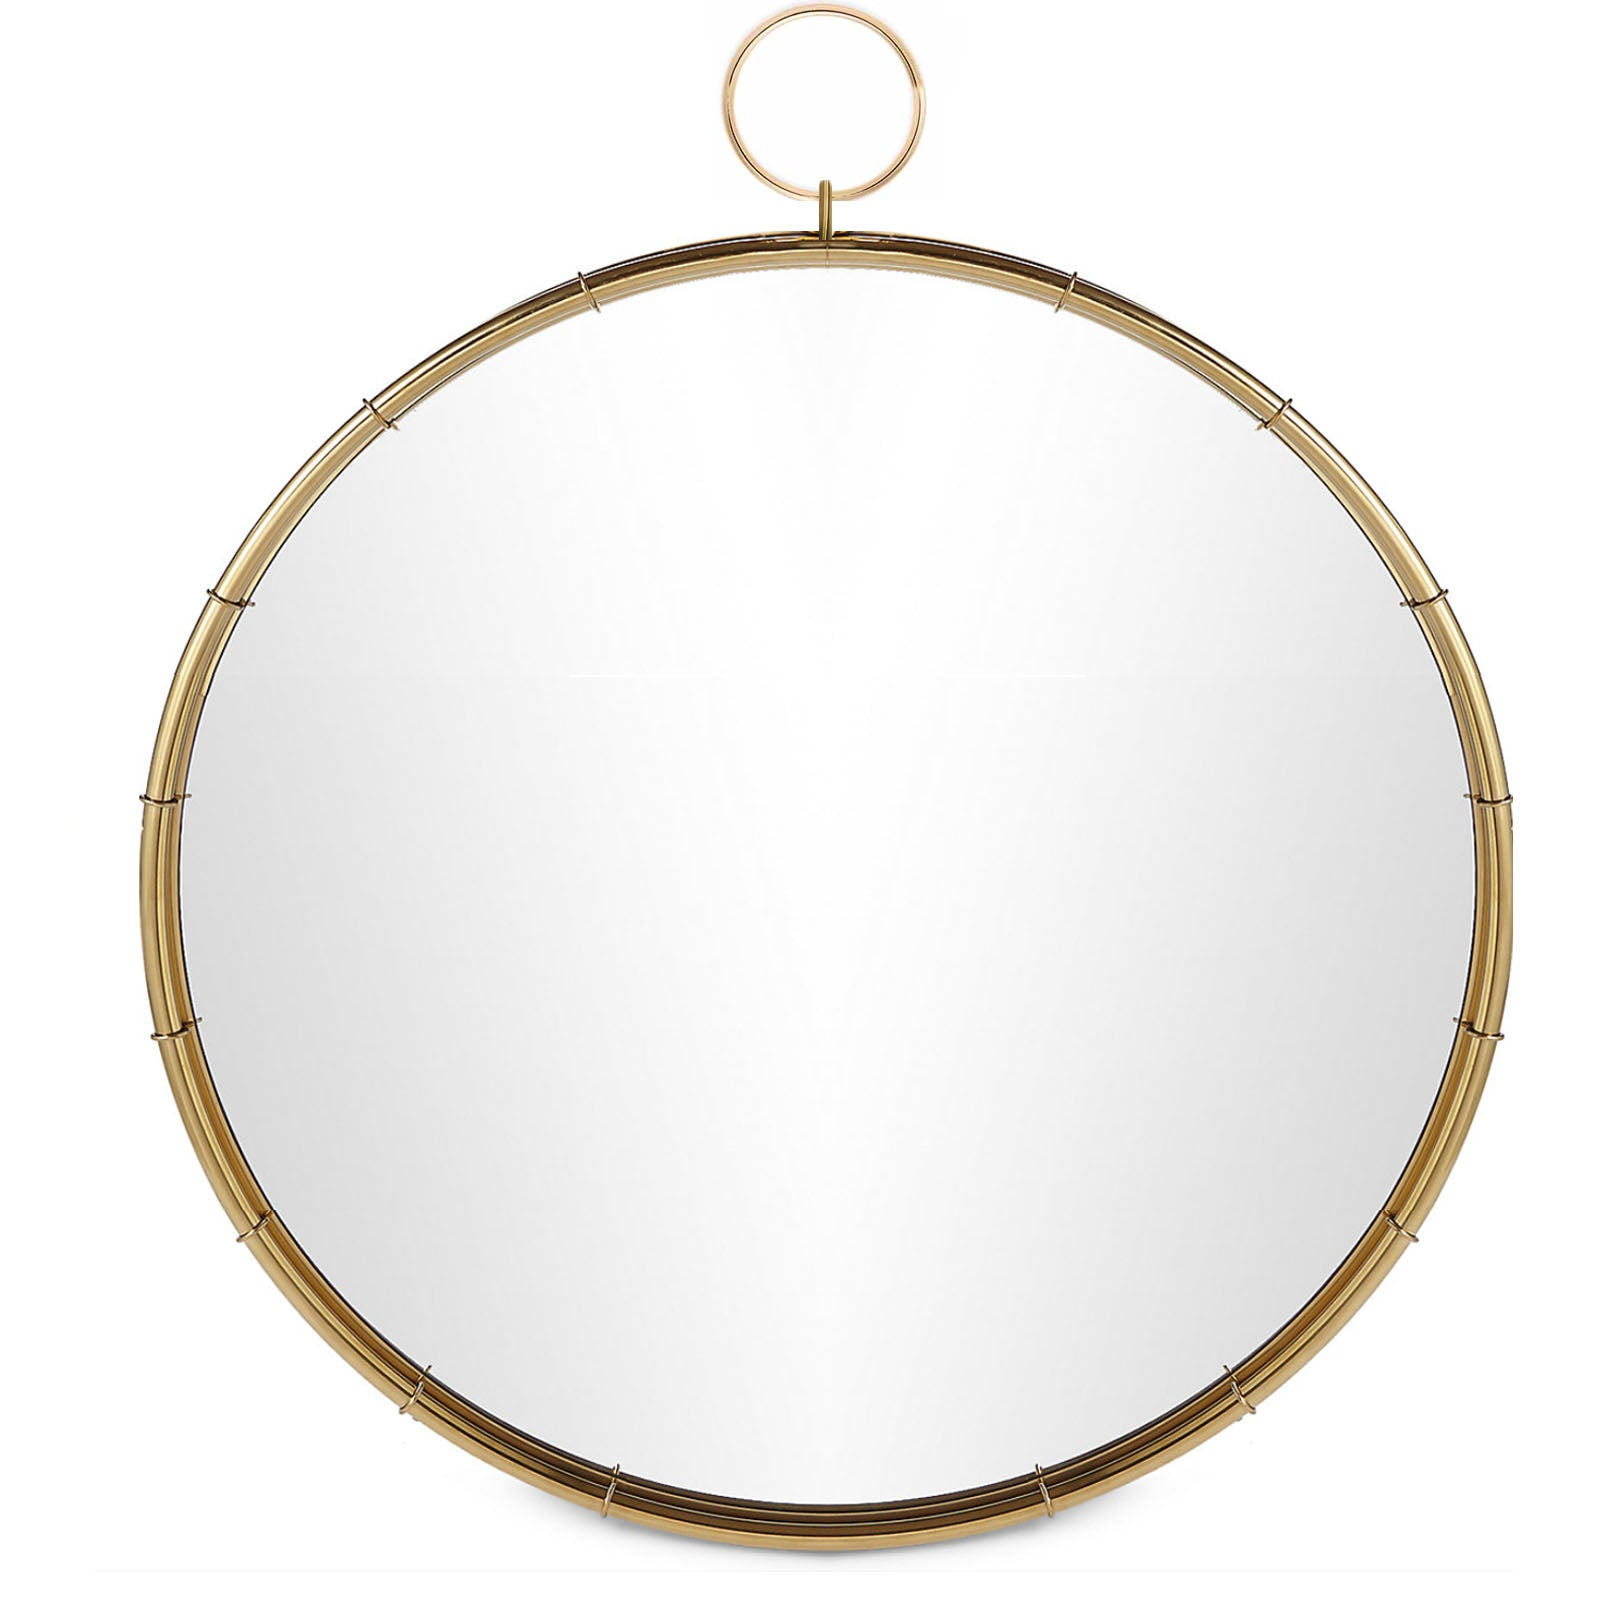 Mid century French Style Mirror  OA-5910-G -  مرآة على الطراز الفرنسي ميد سينشري - Shop Online Furniture and Home Decor Store in Dubai, UAE at ebarza